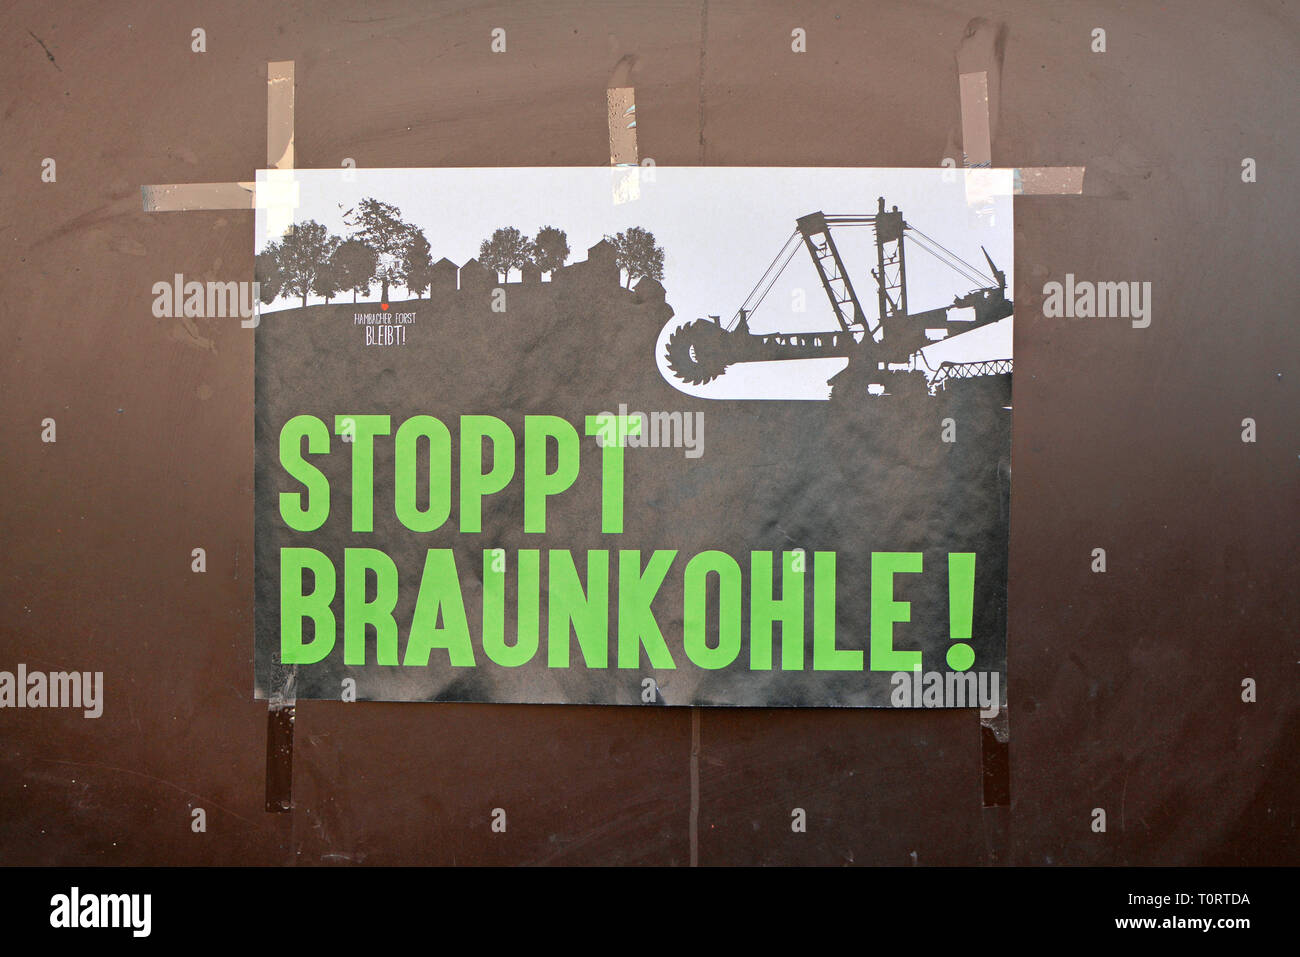 """Protest poster put up on wall saying """"Stop brown coal"""" in bold green letters and """"Hambacher forest stays"""" in upper corner in Germany Stock Photo"""